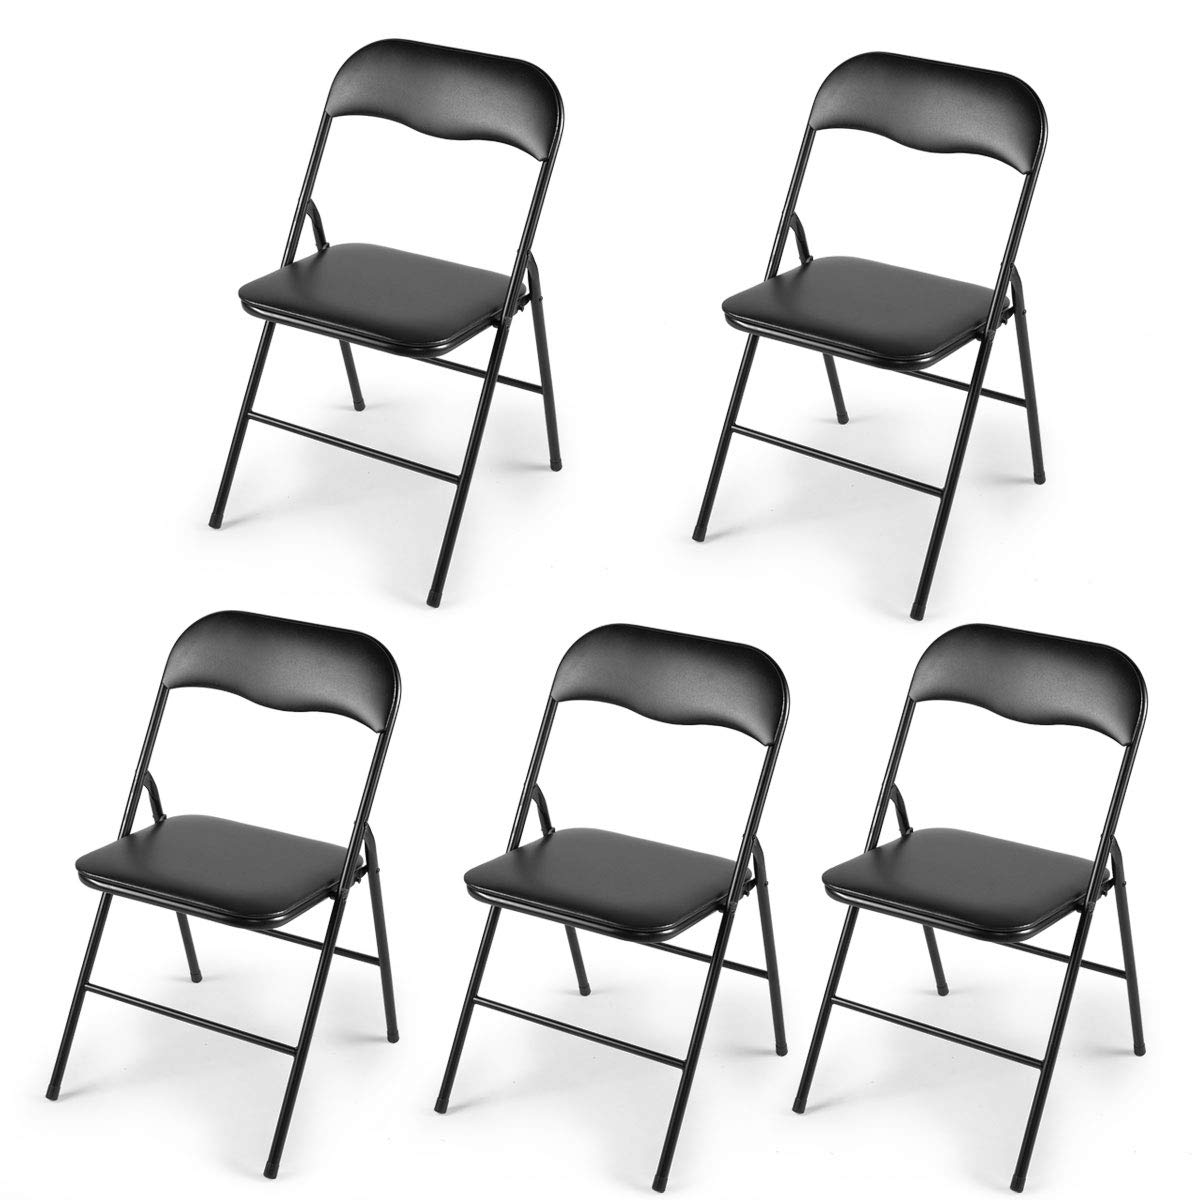 5-Pack Plastic Folding Chairs Wedding Banquet Seat Premium Party Event Chair Black